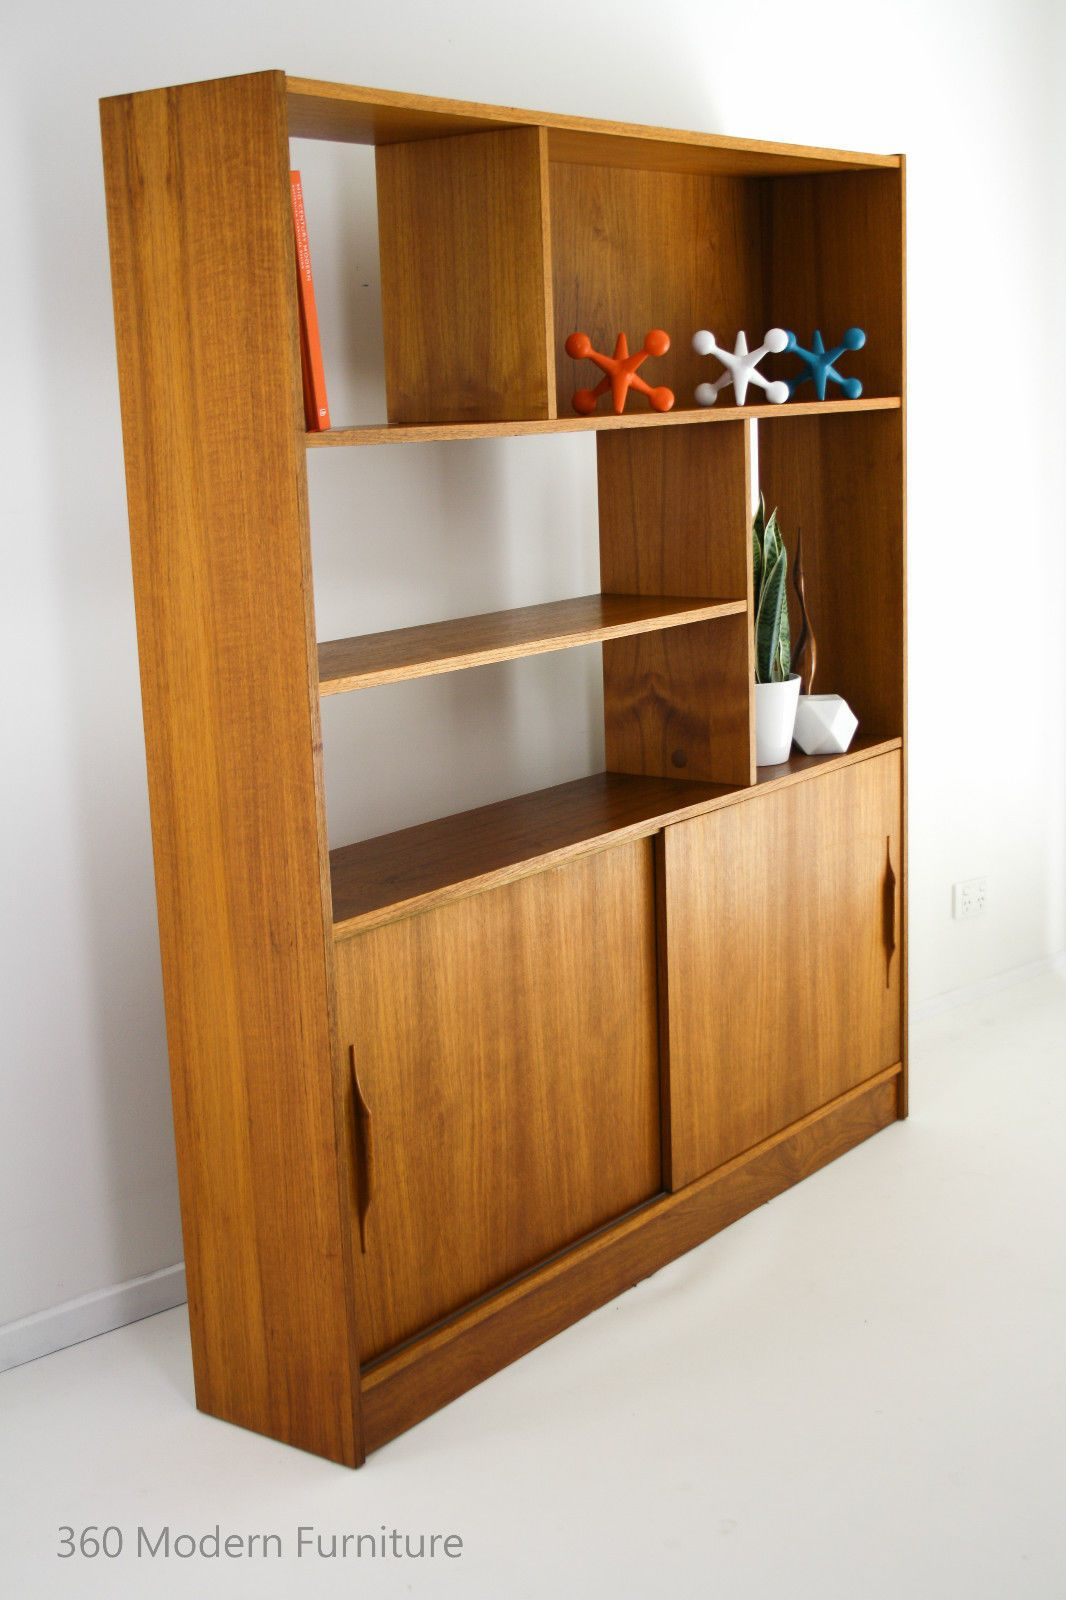 Mid century room divider wall unit bookcase teak shelves retro mid century room divider wall unit bookcase teak shelves retro vintage geometric amipublicfo Images